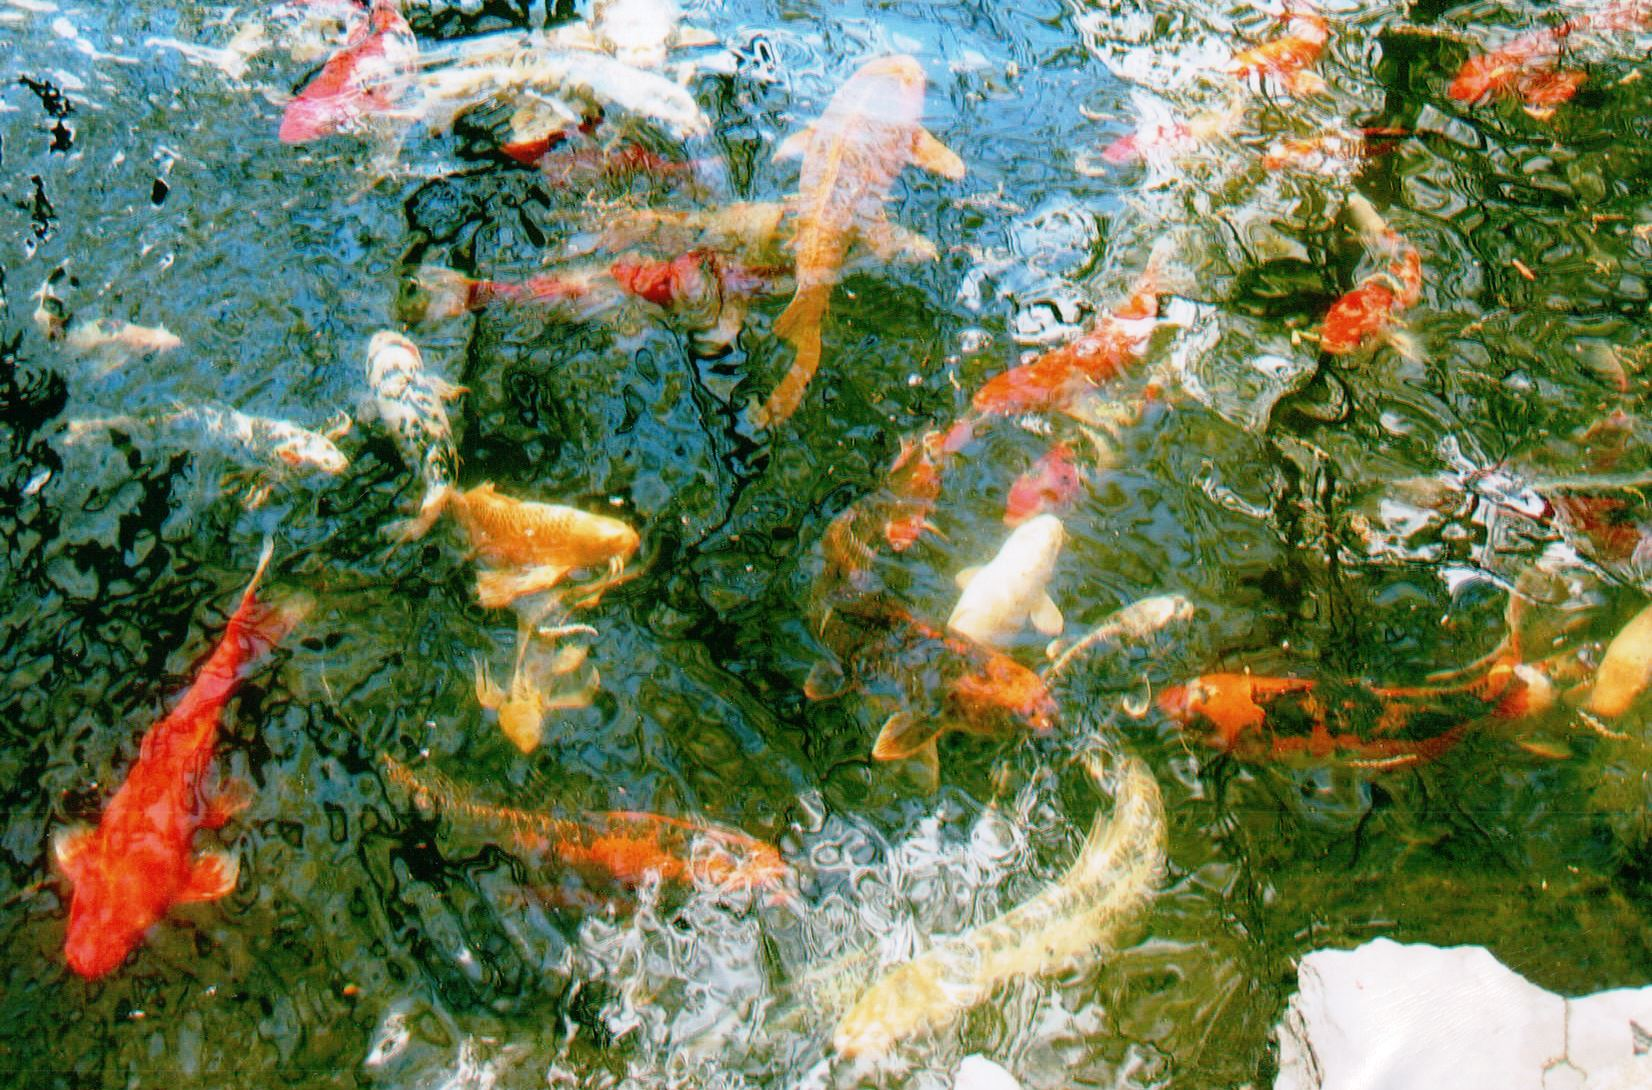 Blackfeld Fisheries Koi Fish